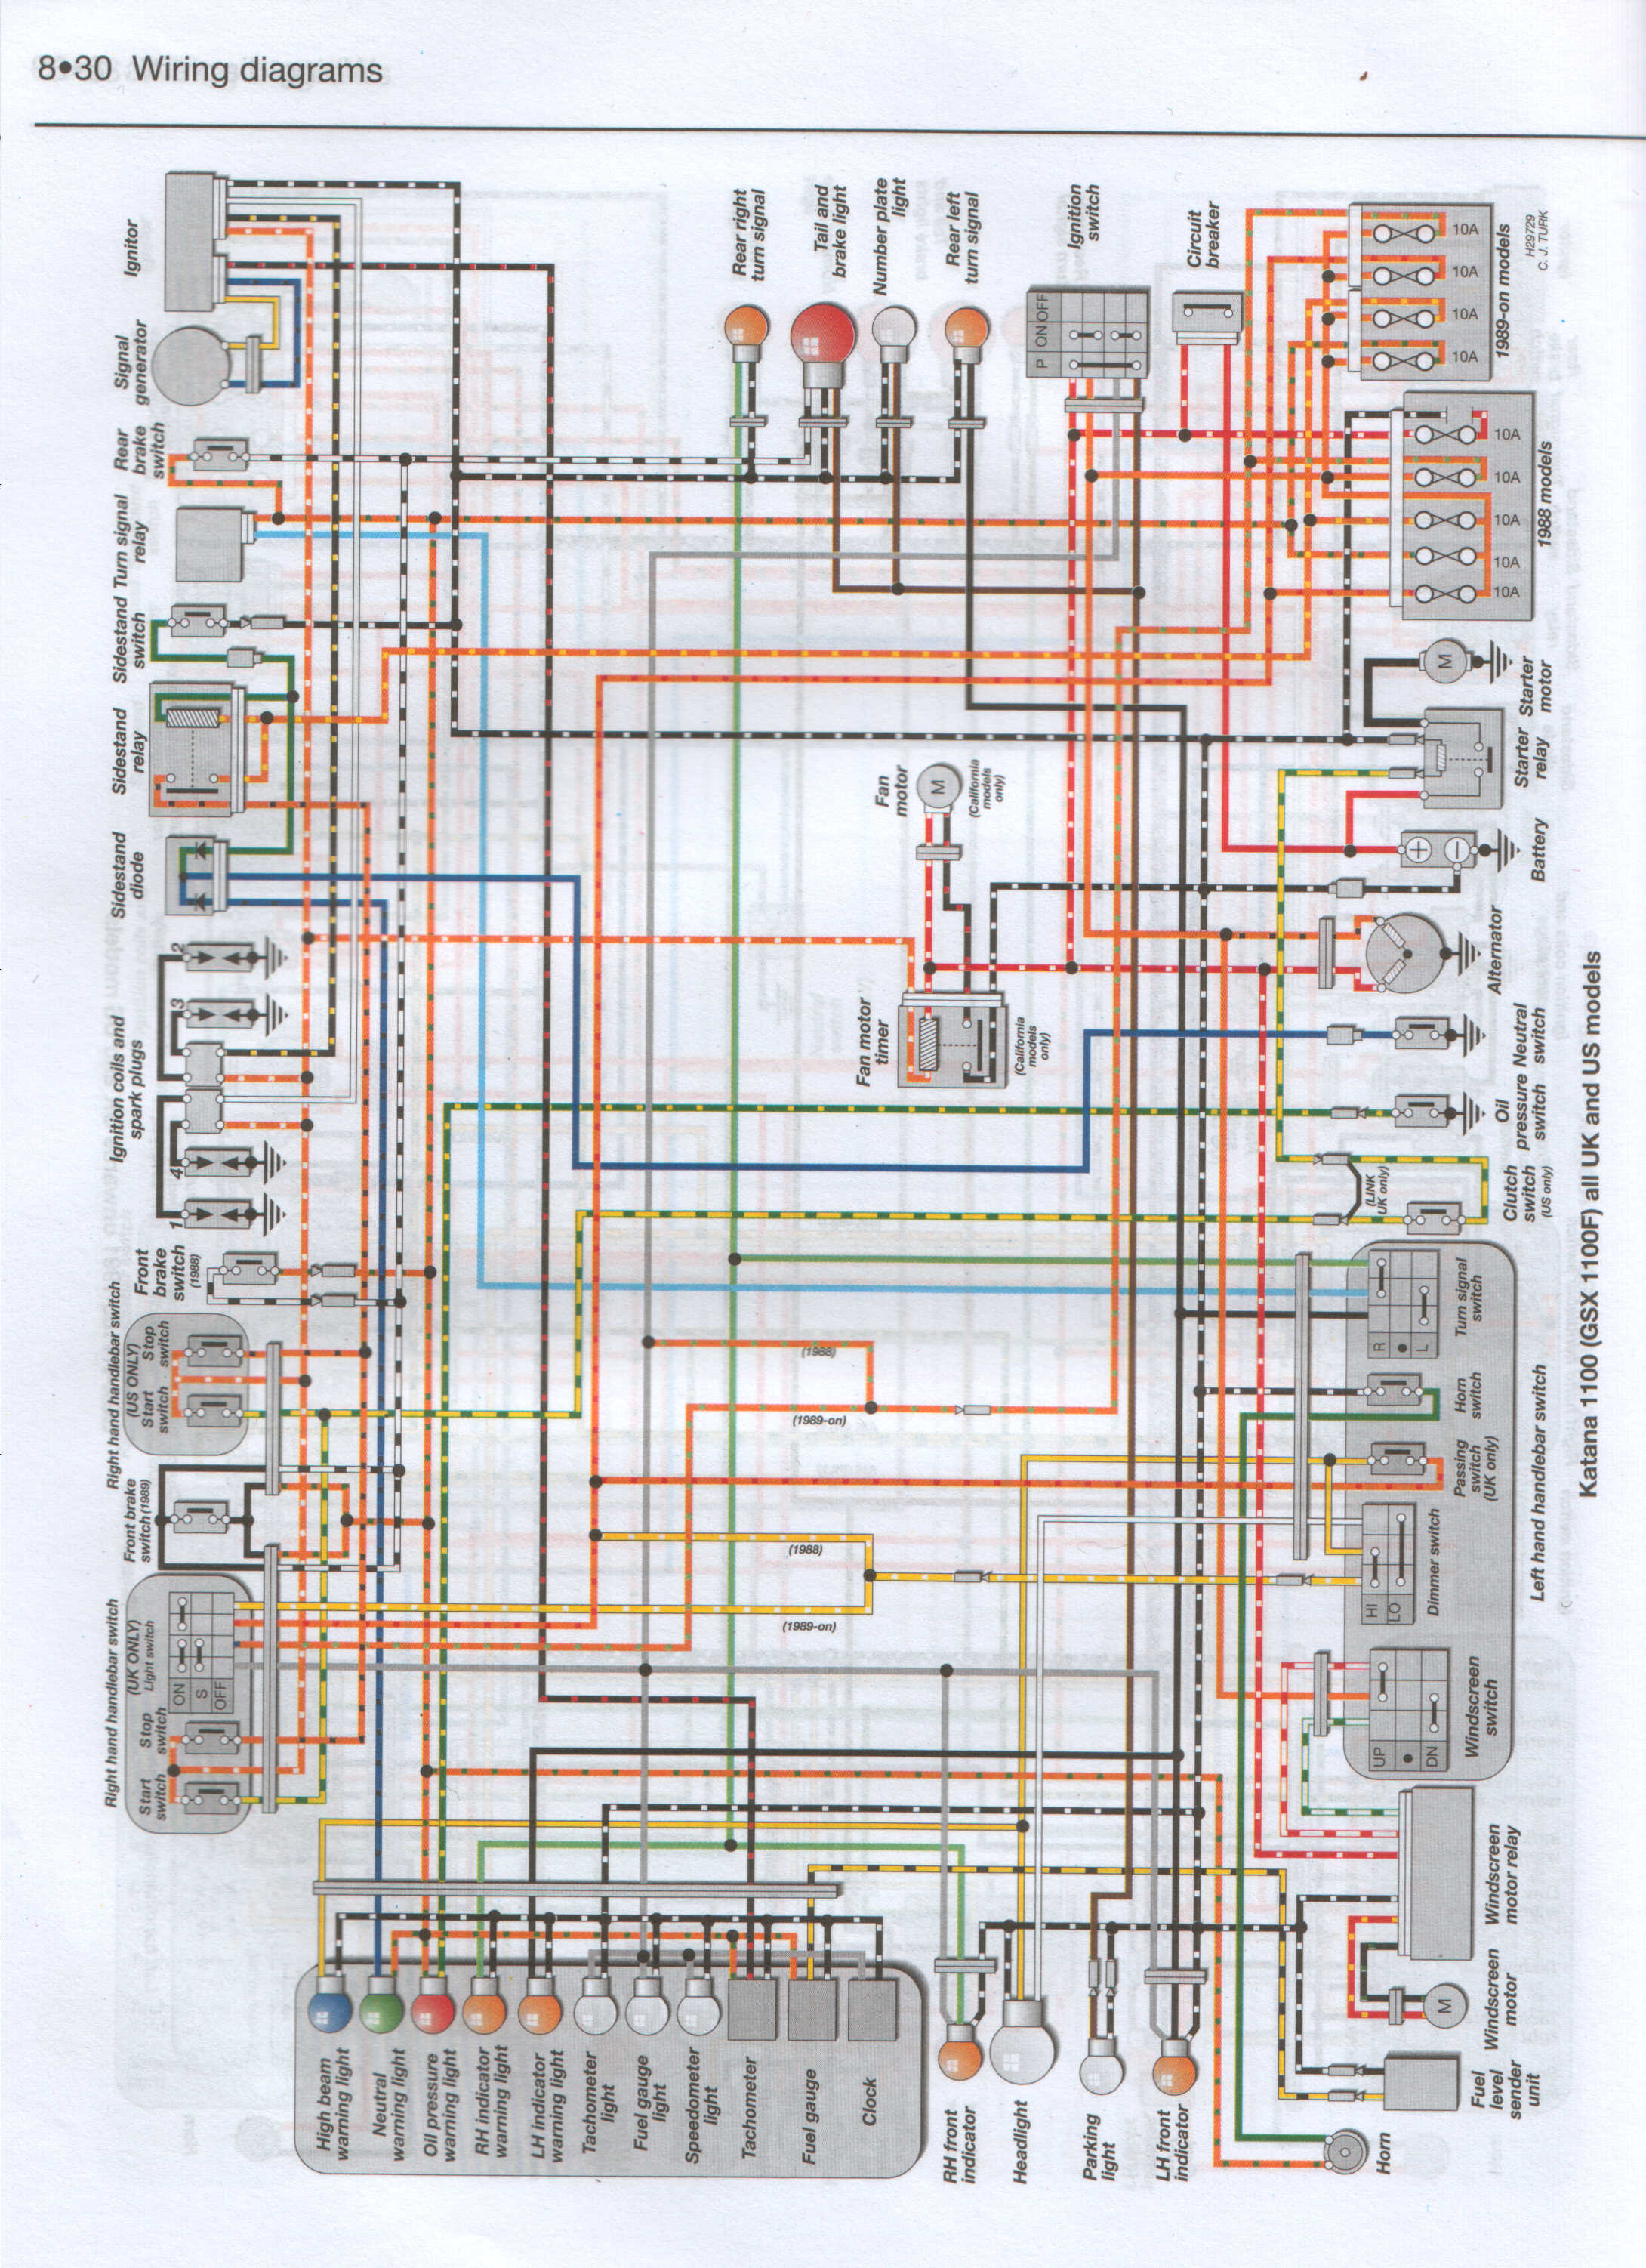 Suzuki_GSX1100F_Wiring_Diagram?resized665%2C916 suzuki dt40 wiring diagram pdf efcaviation com gs550 wiring diagram at eliteediting.co